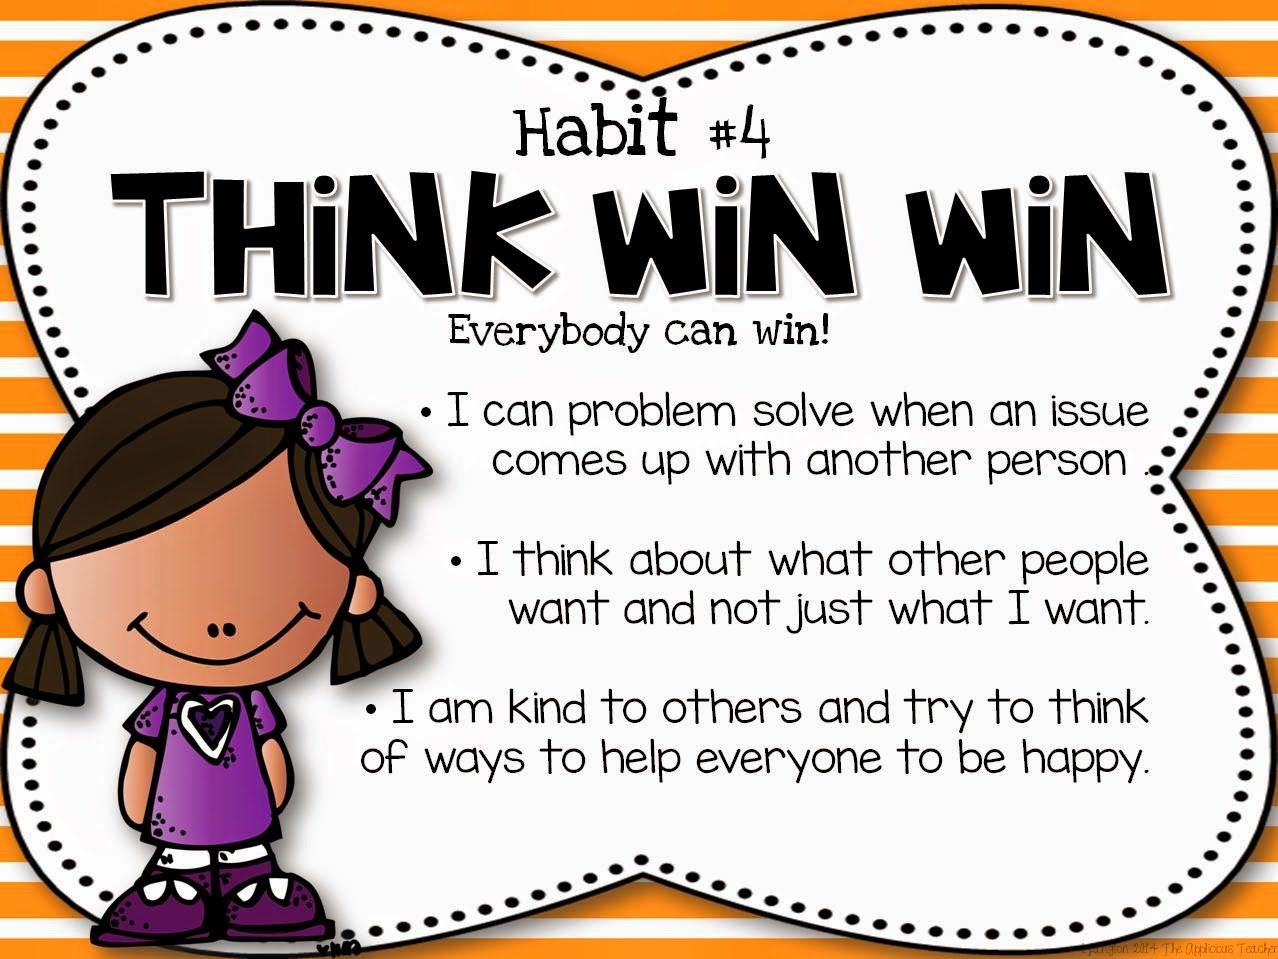 Think Win-Win: Habit 4 of The 7 Habits of Highly Effective People